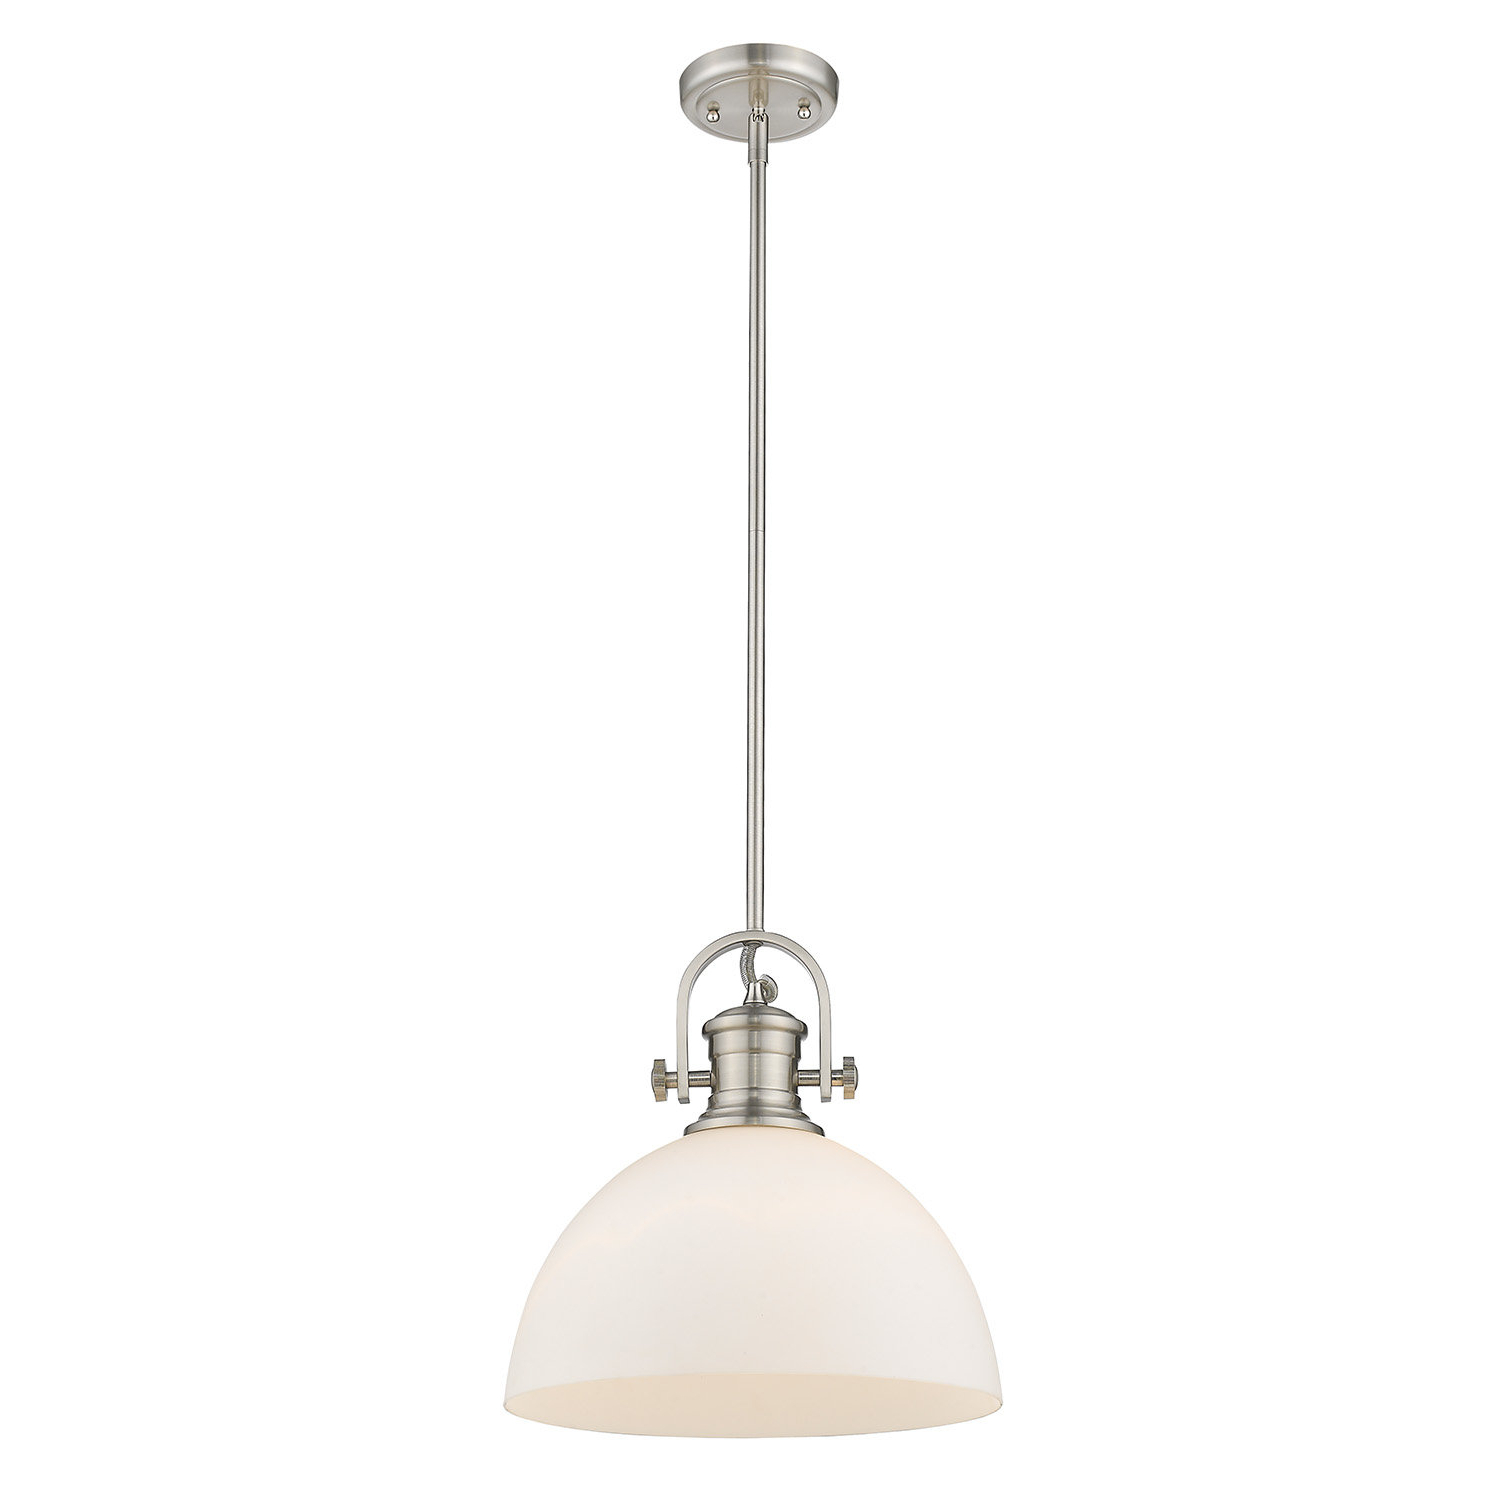 Well Liked Abernathy 1 Light Dome Pendants Within Vedder 1 Light Inverted Pendant (View 18 of 20)